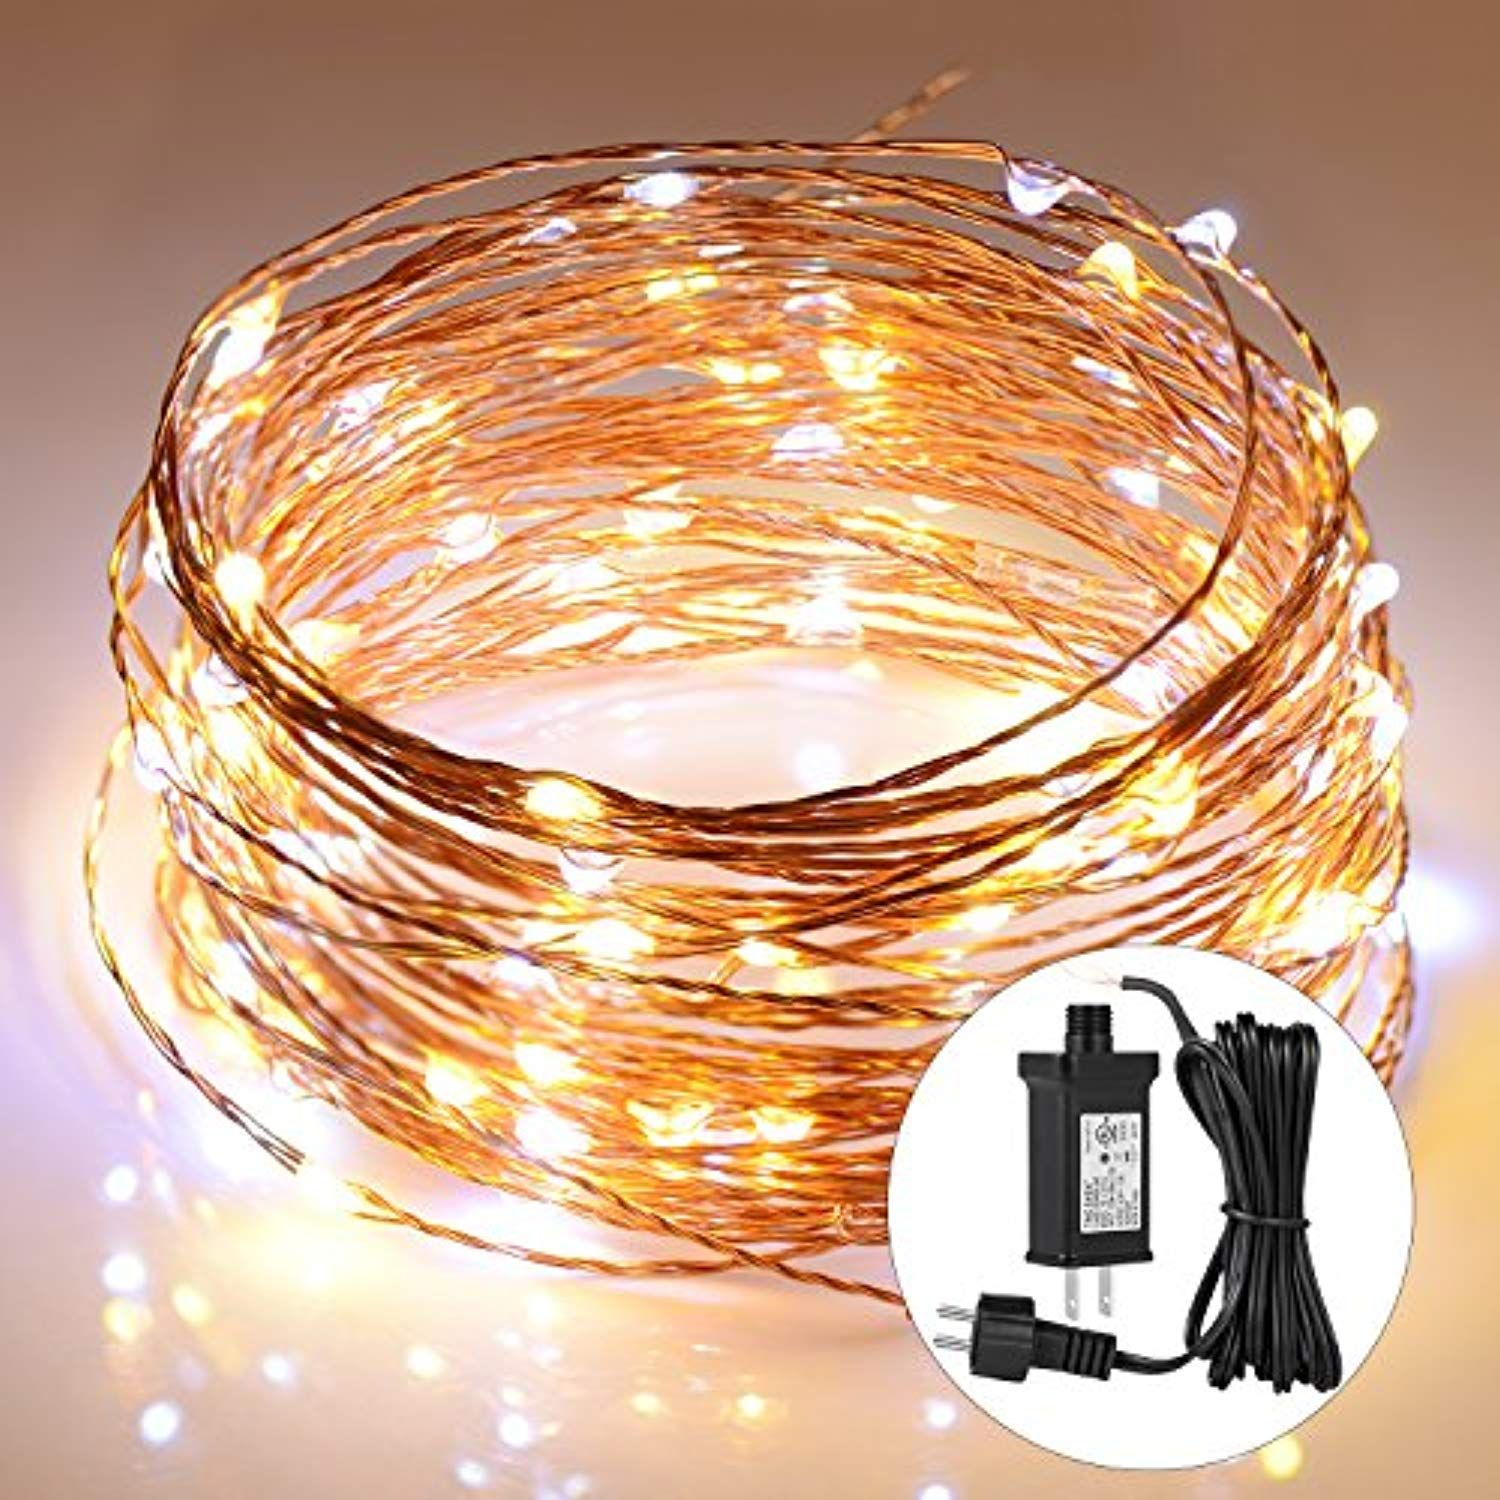 Boomile String Lights 39Ft 120 Leds, 2 Colors Interval Fairy